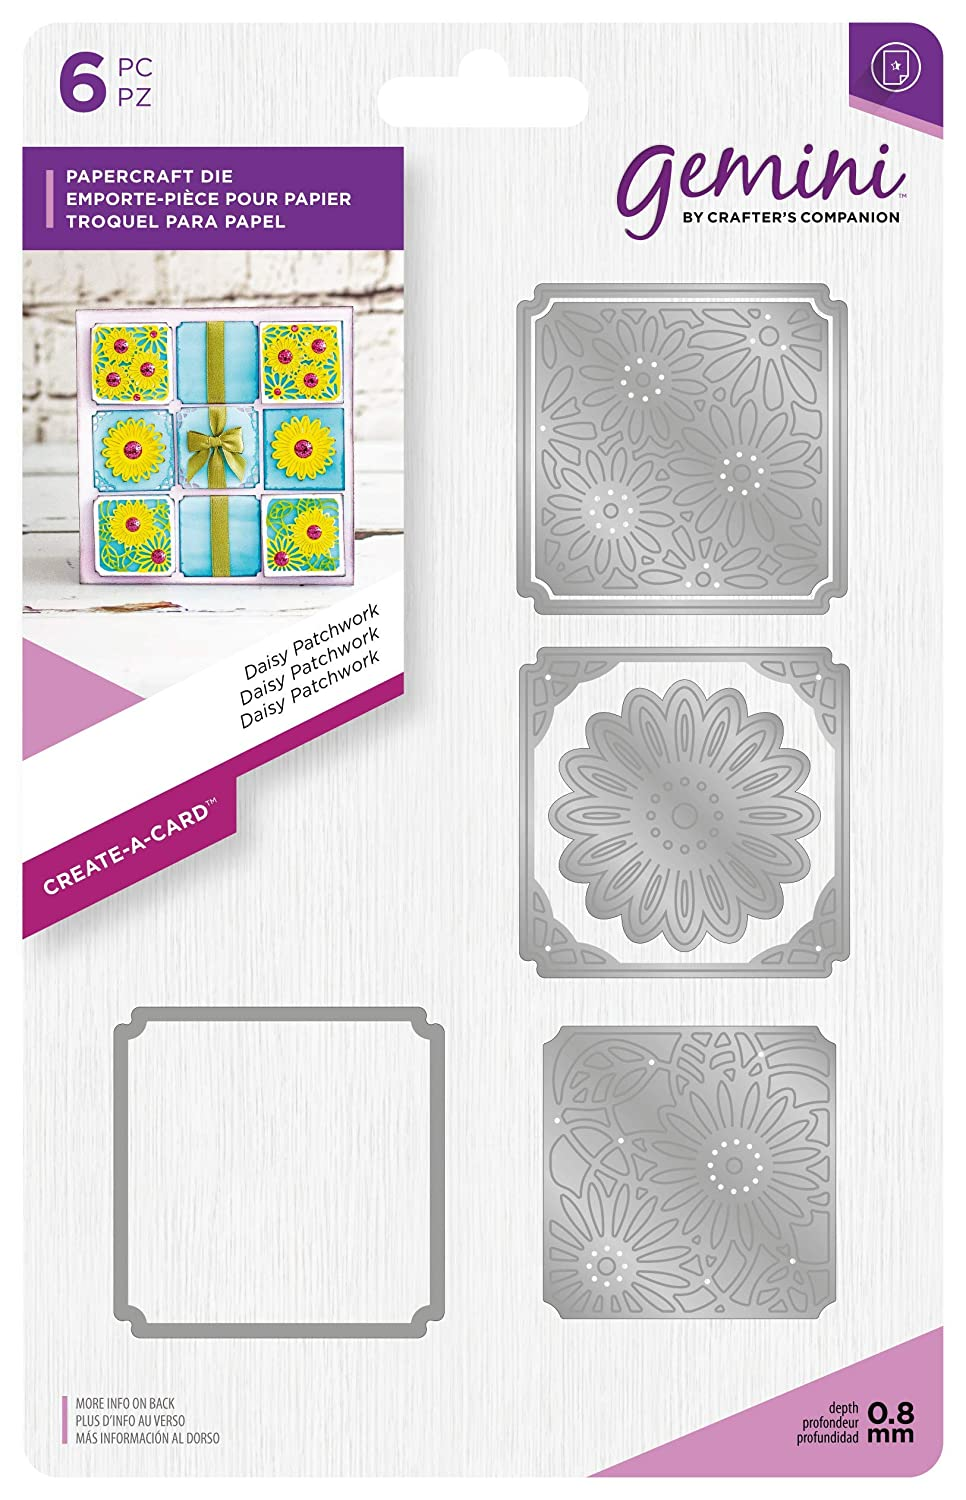 Gemini Die - Create-a-Card - Daisy Patchwork, Silver, Various Crafter's Companion GEM-MD-CAD-DAIP